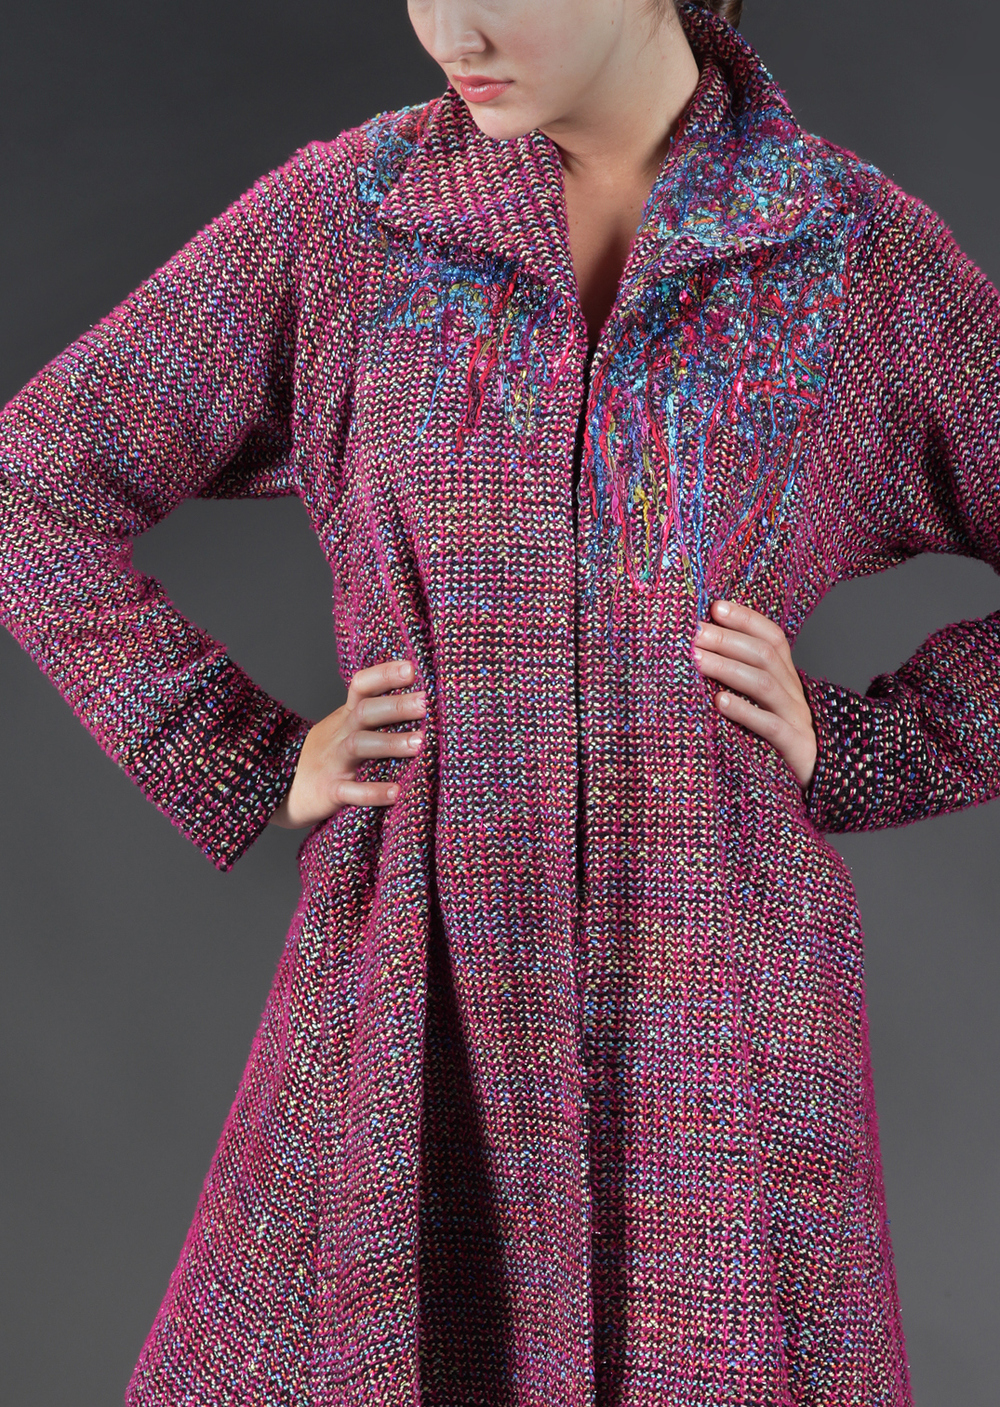 Handwoven Coat, Kathleen Weir-West, Business Wear 4.jpg